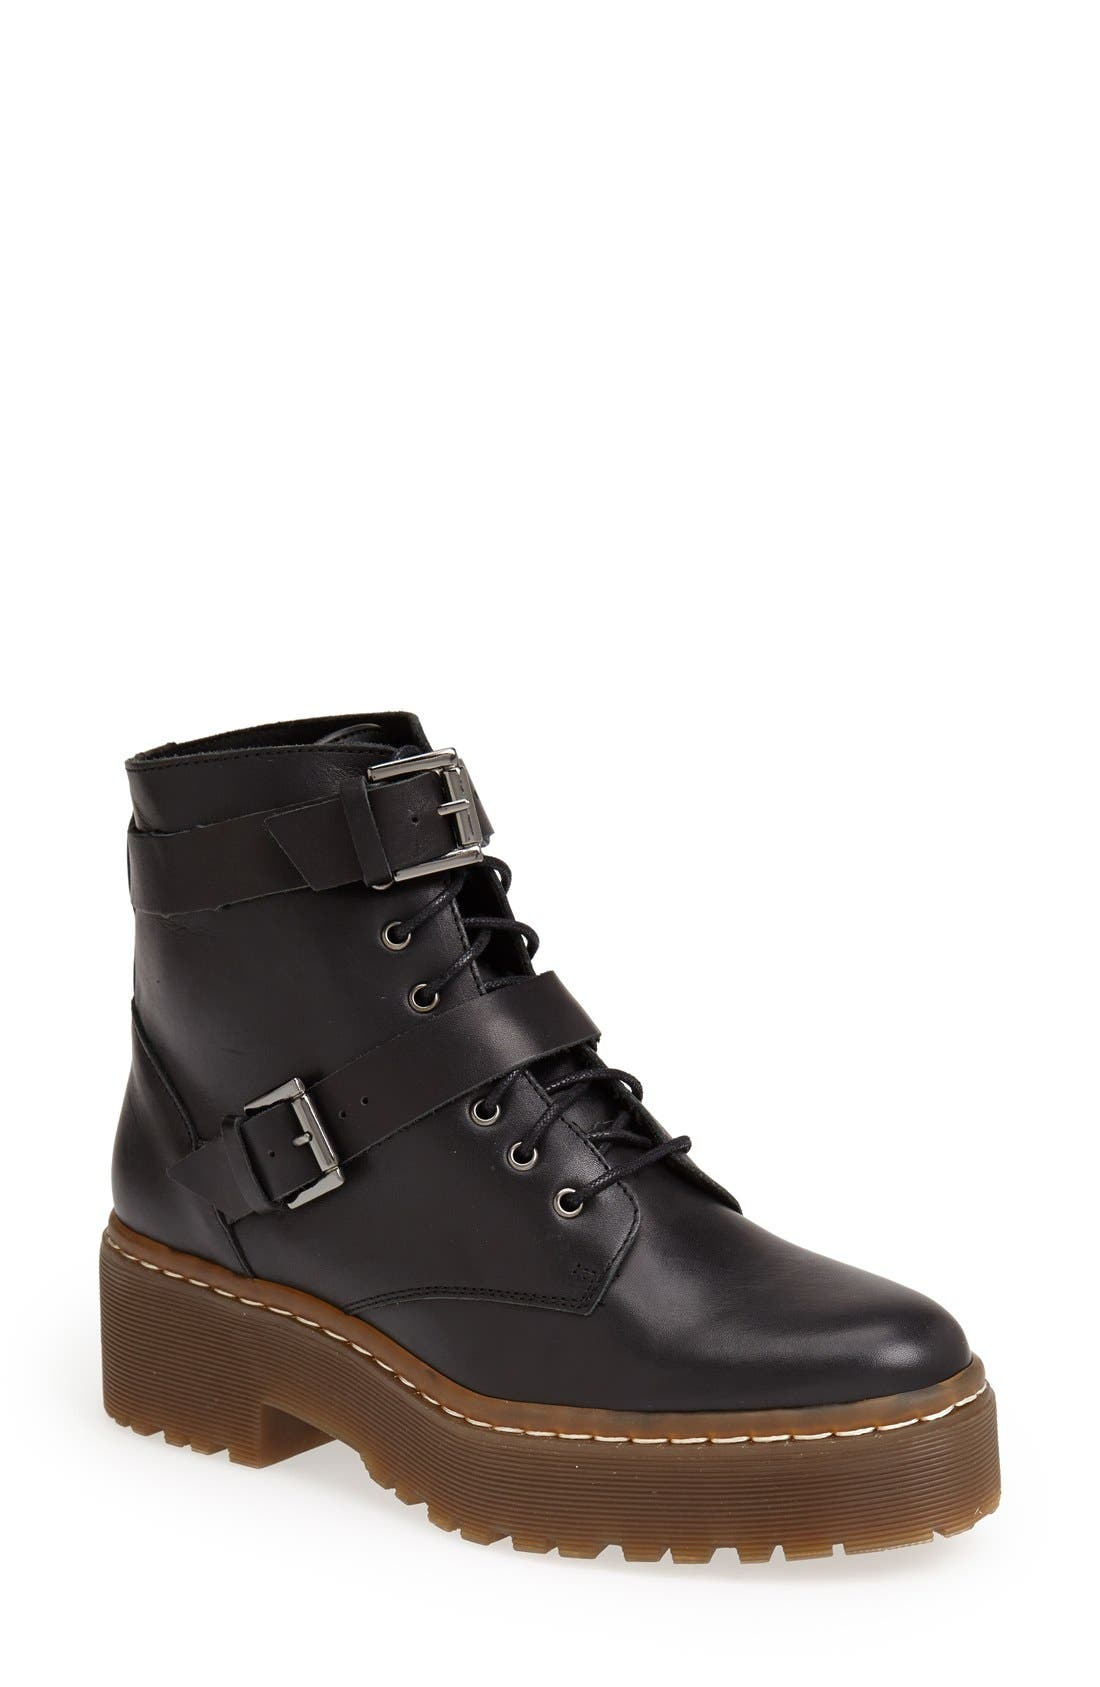 Alternate Image 1 Selected - Topshop 'Auction' Lace-Up Platform Boot (Women)